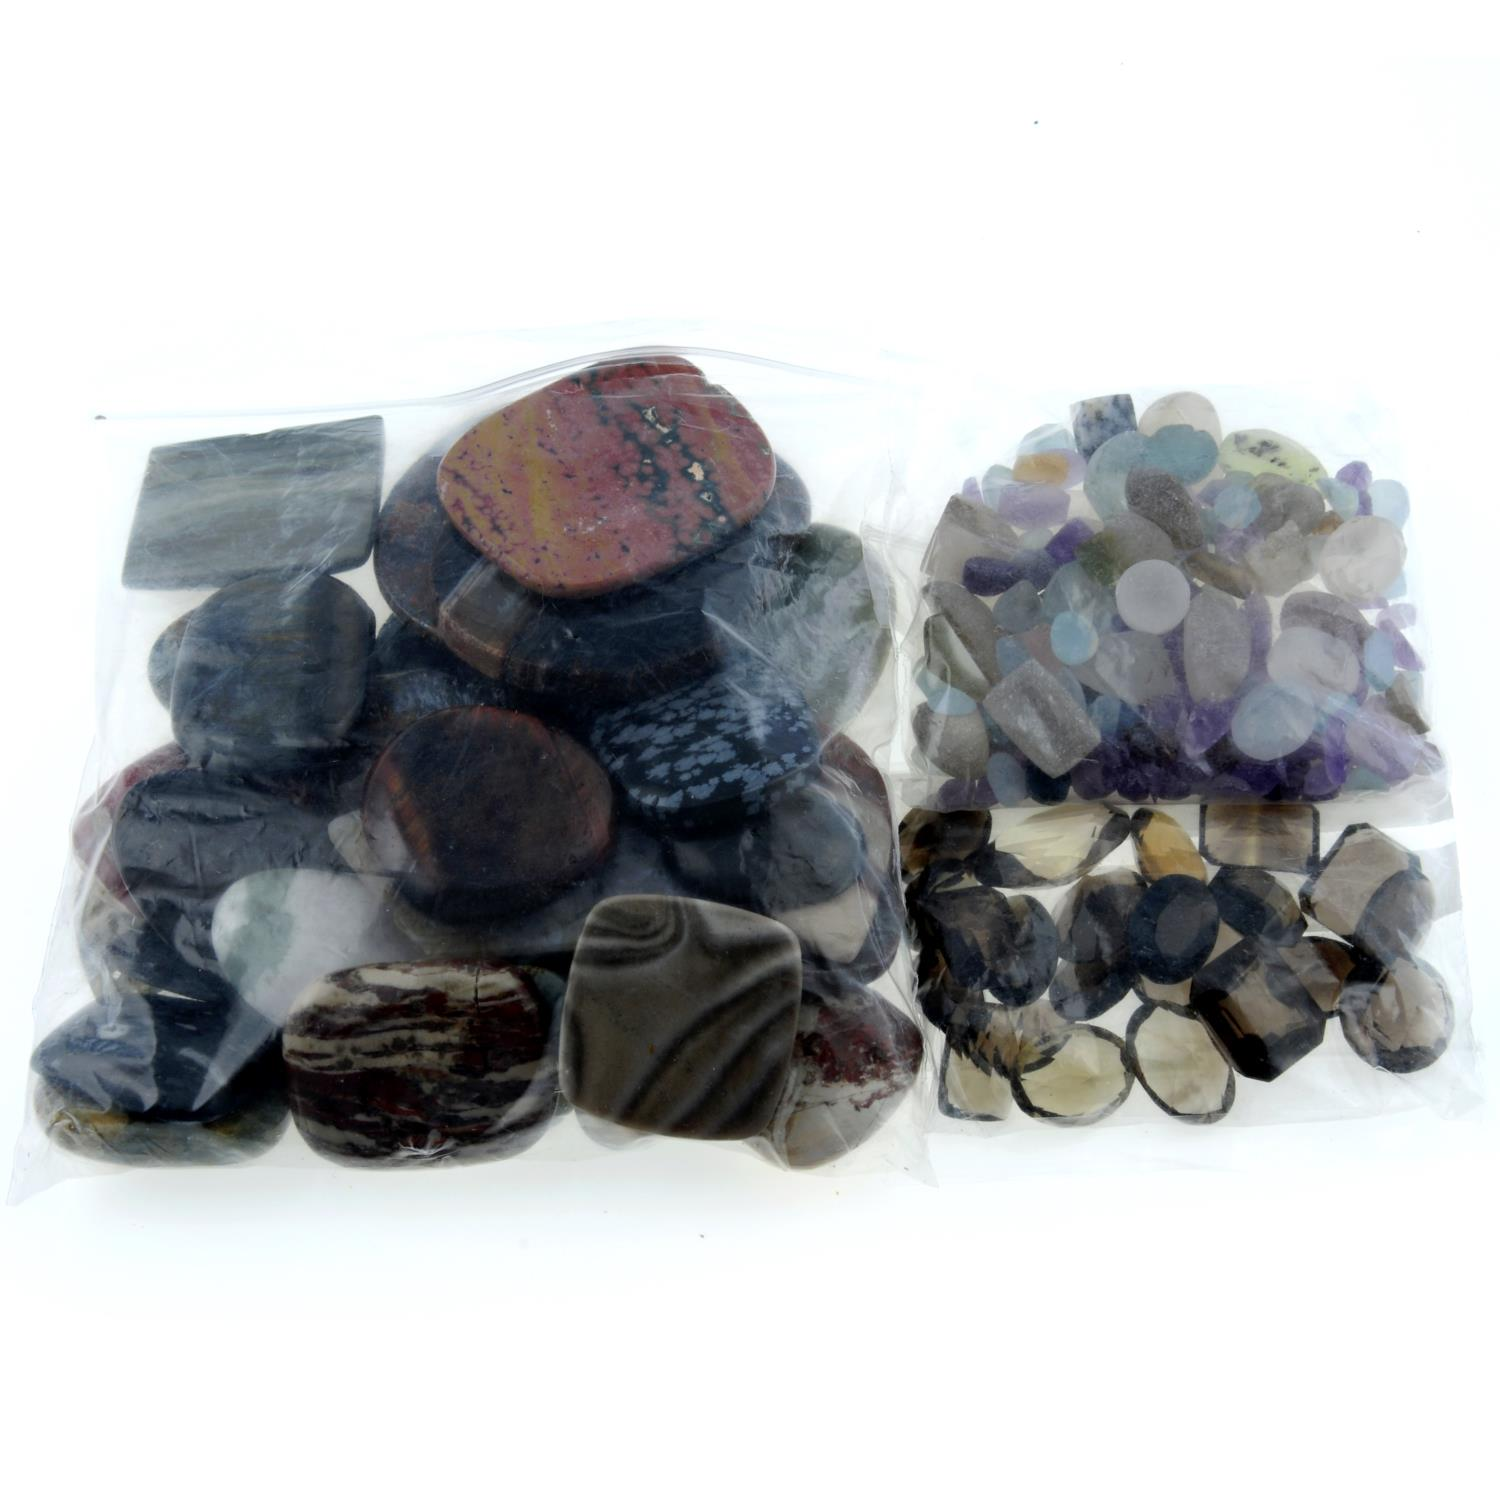 A selection of gemstones, weighing 1.1kgs, to include quartz, topaz, bloodstone and others. - Image 2 of 3